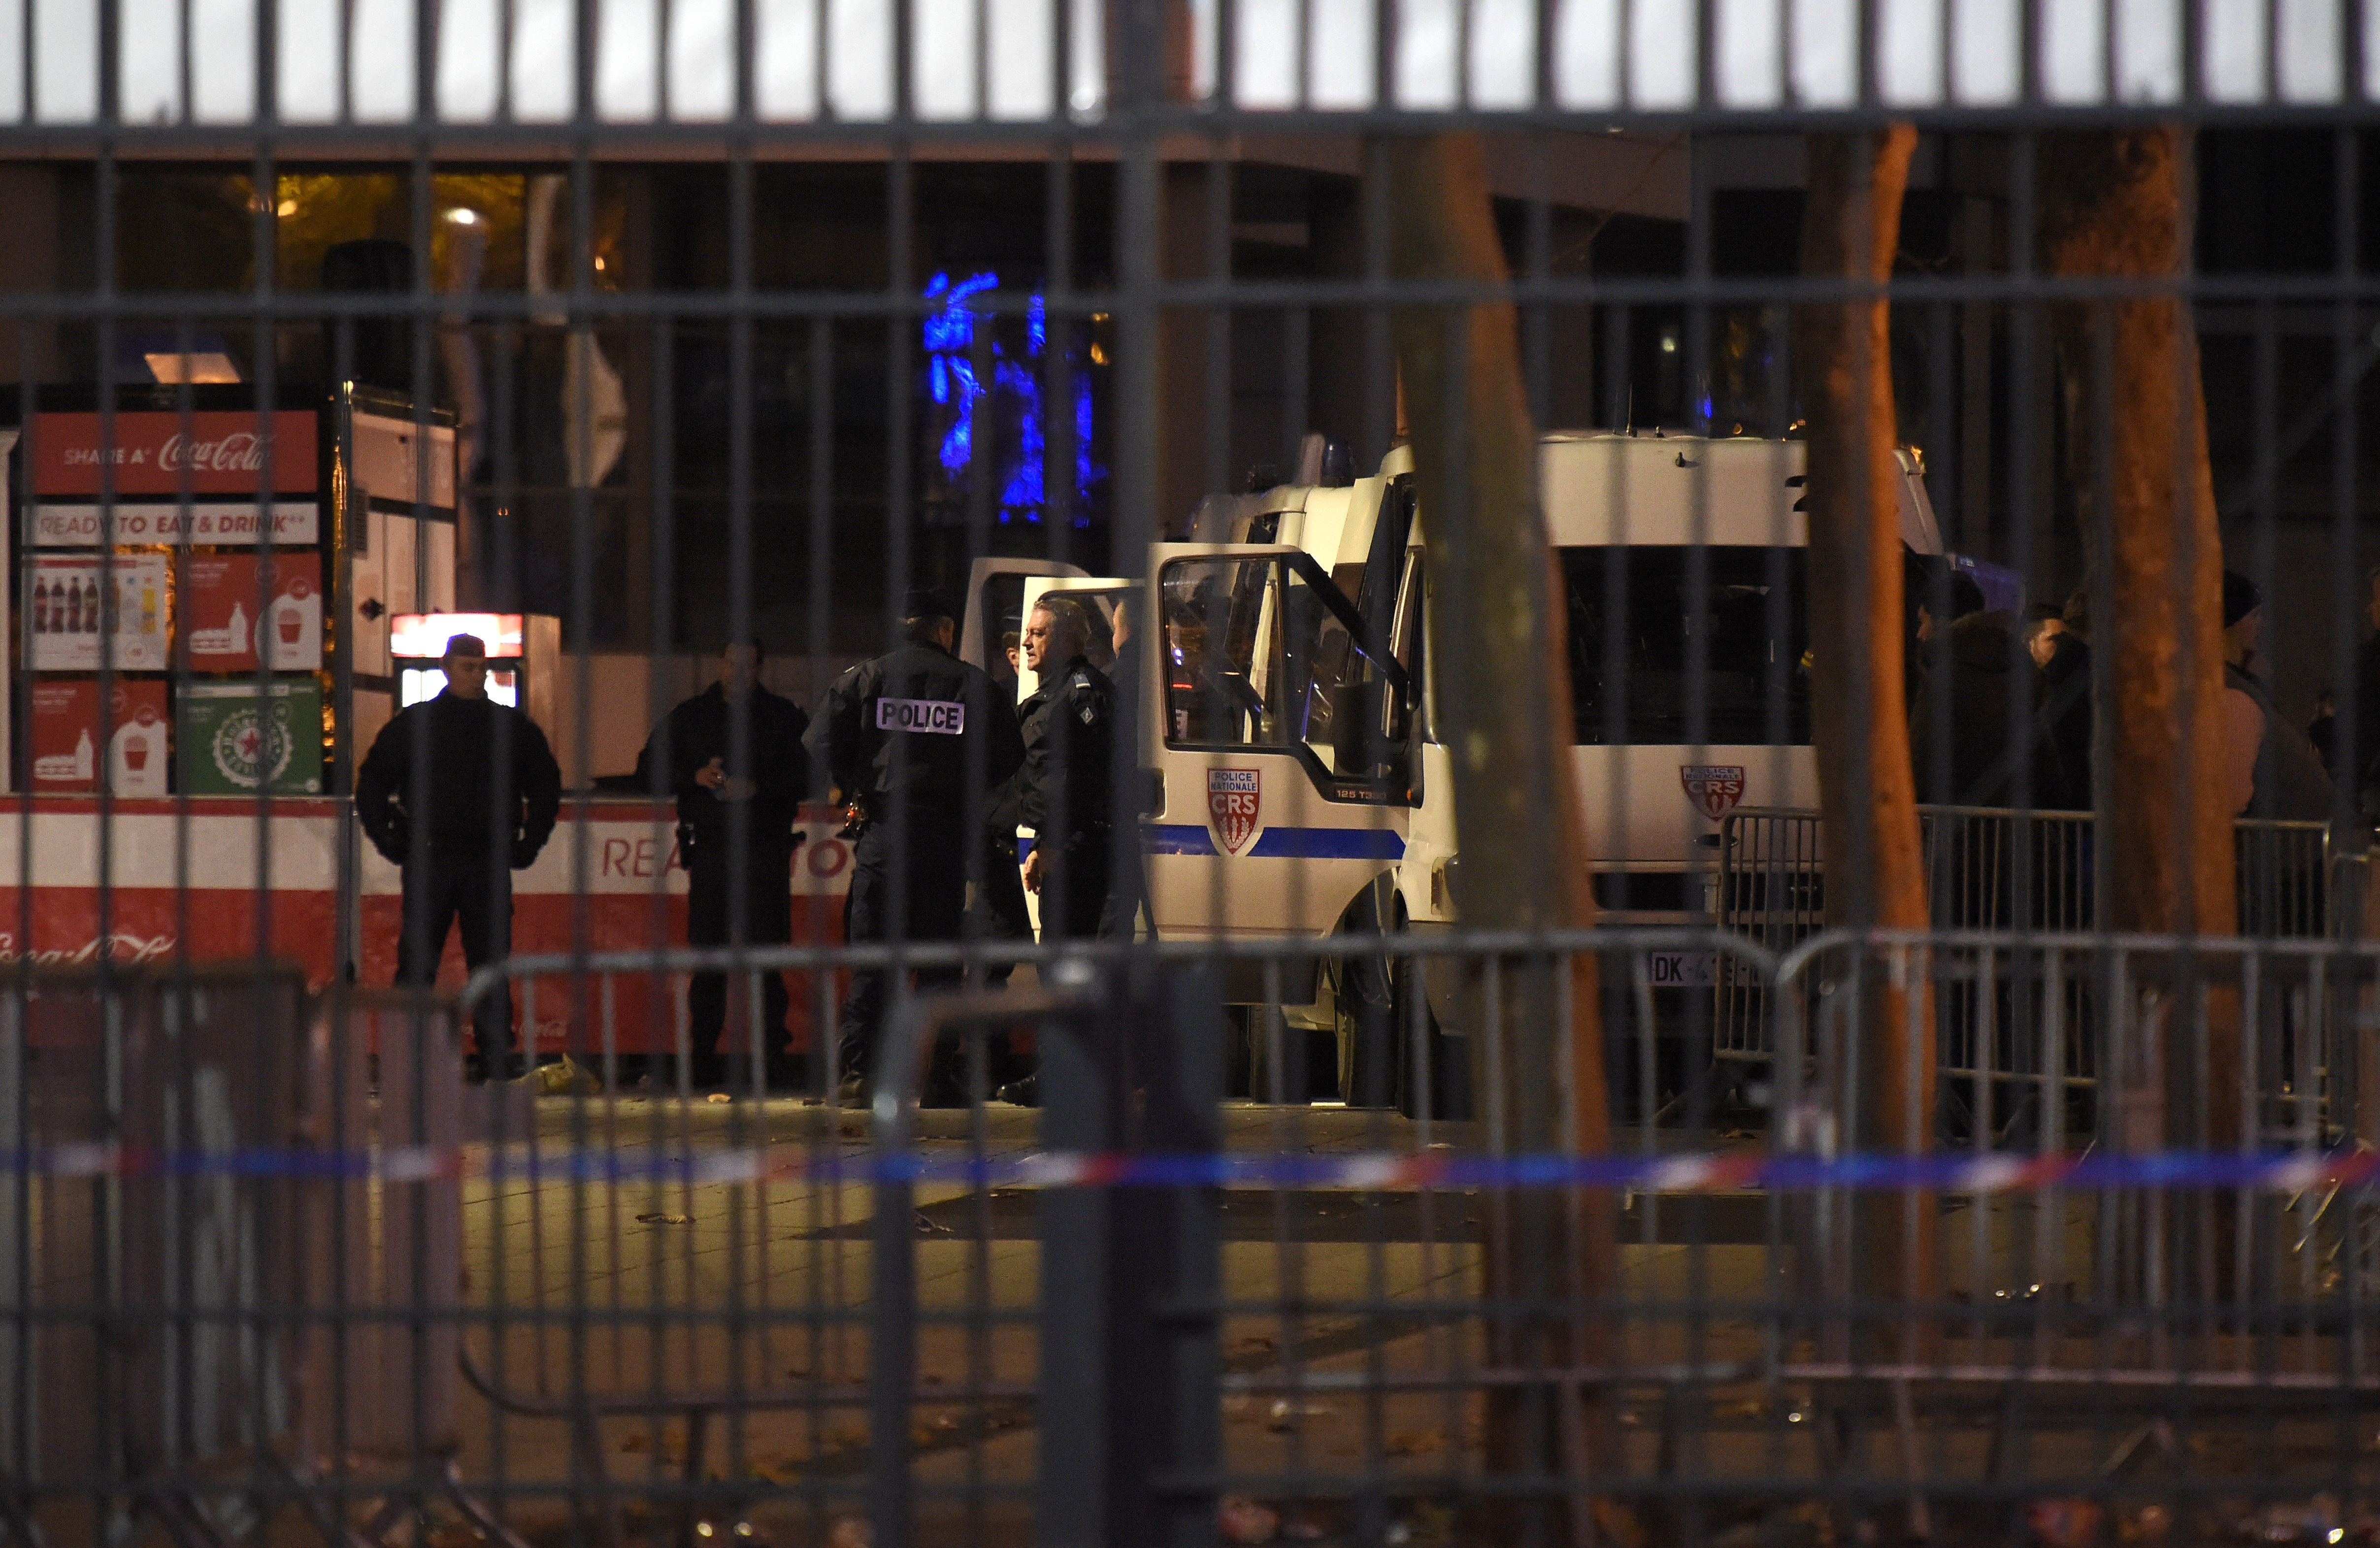 Police forces stand guard outside the Stade de France stadium in Saint-Denis, north of Paris after three suicide bombs were detonated. (Getty)